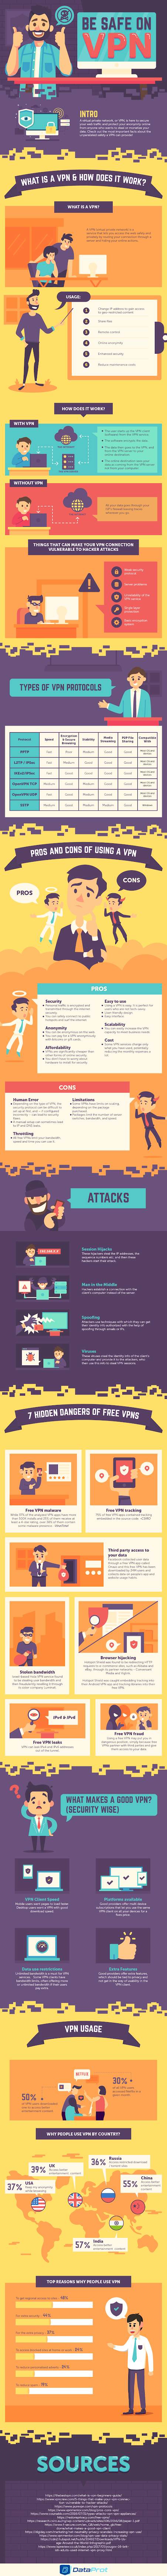 Be safe: Use a VPN #infographic